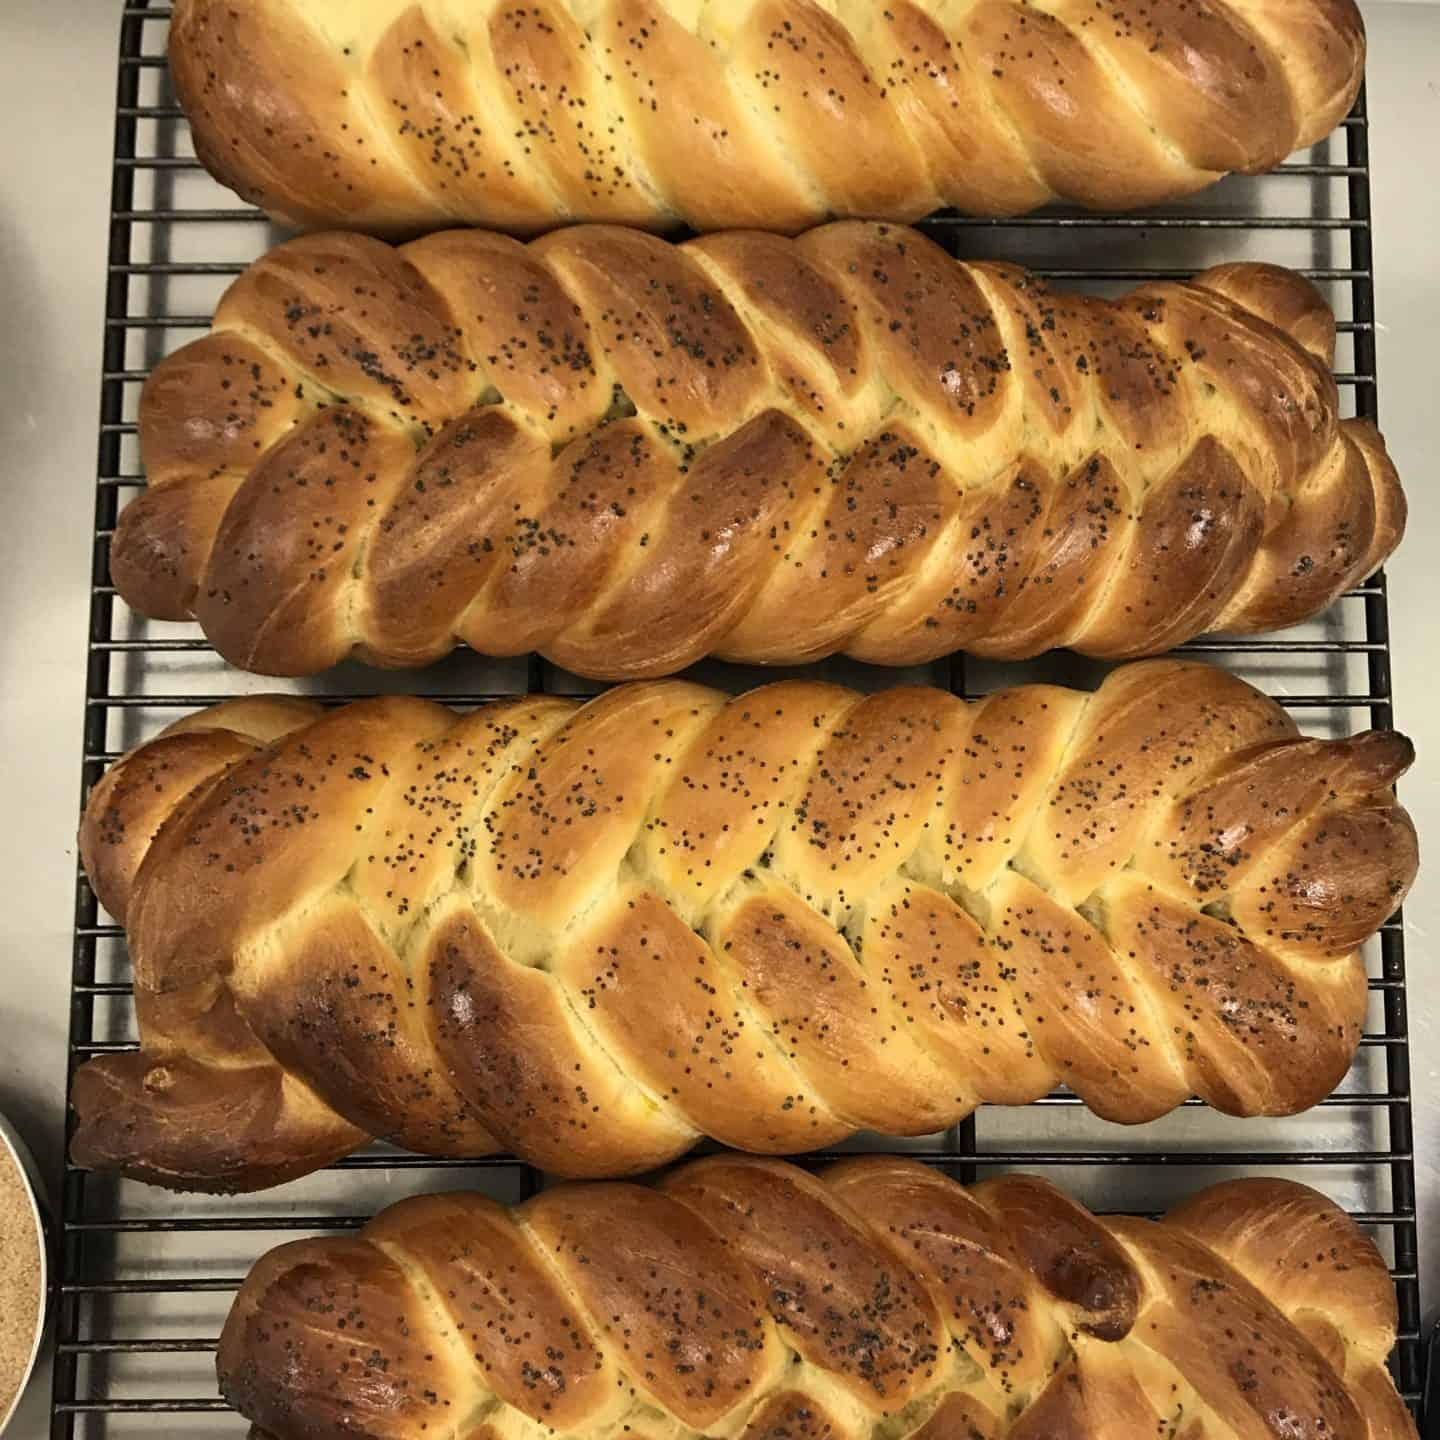 Chollah bread fresh from the oven